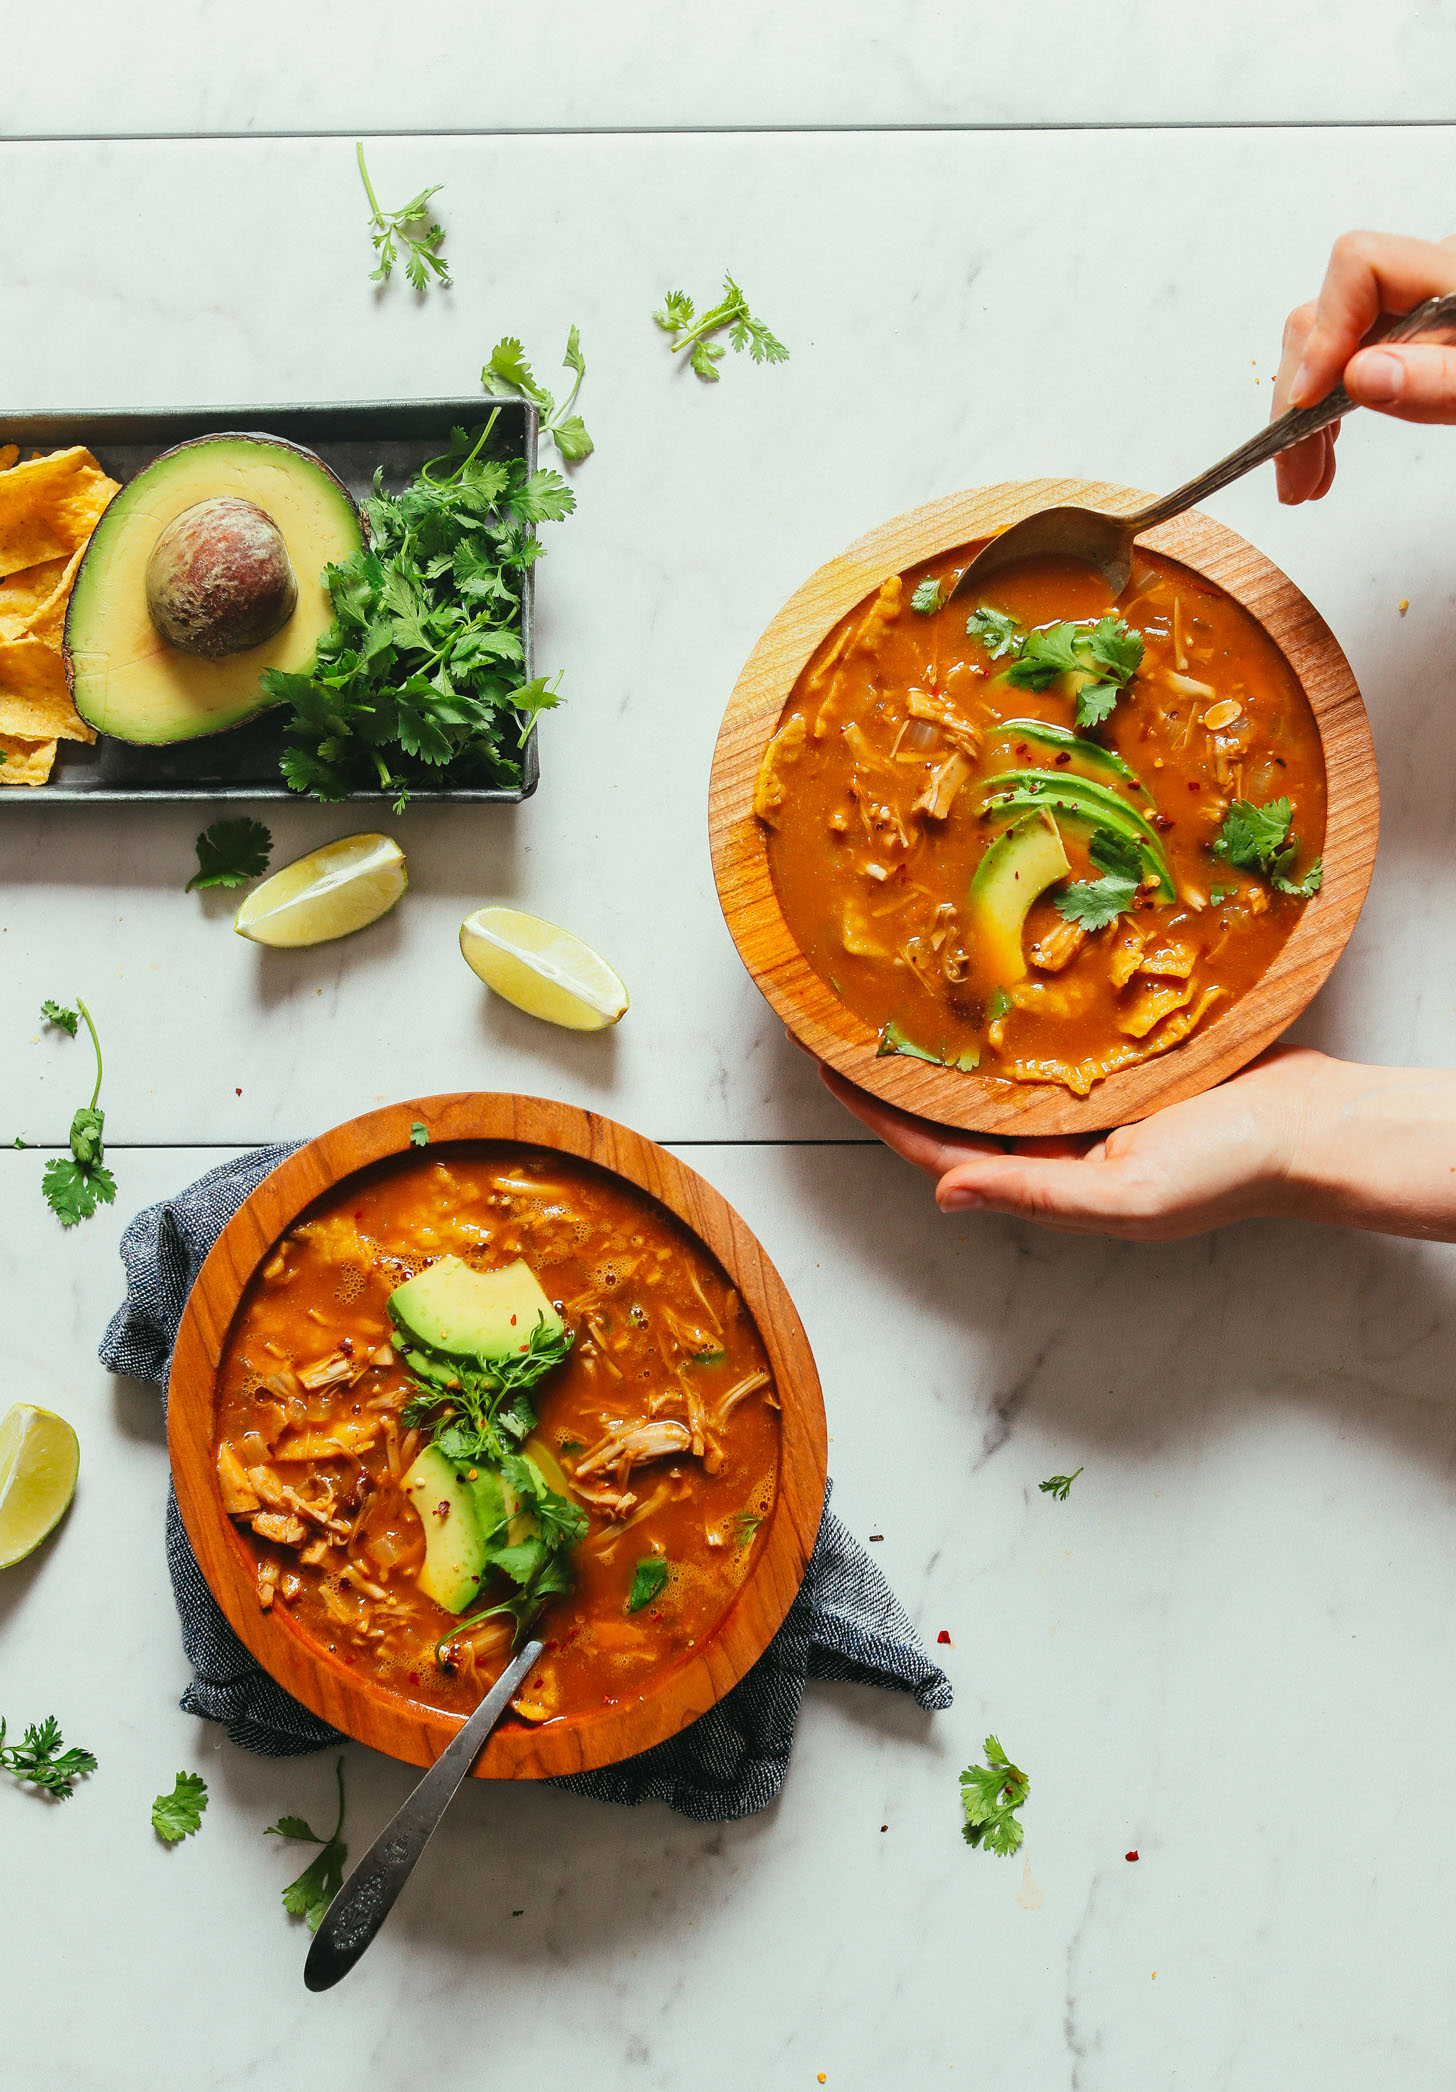 Grabbing a spoonful of Vegan Jackfruit Tortilla Soup topped with avocado and cilantro